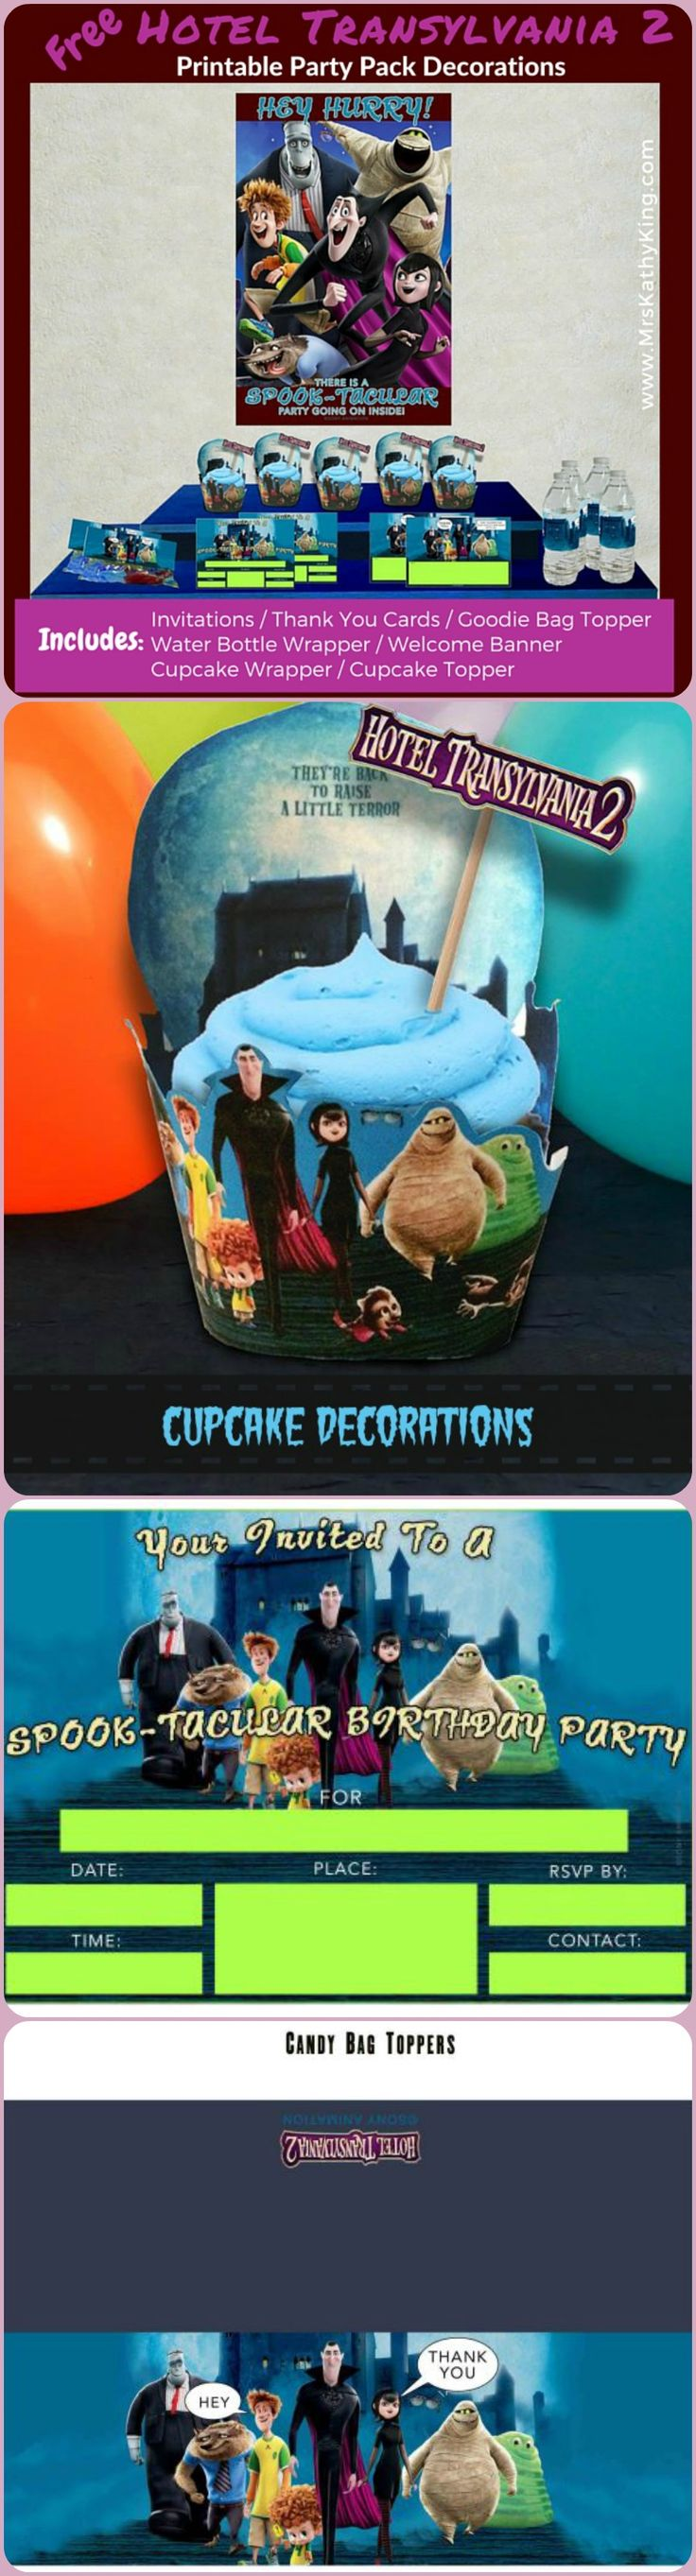 Looking for Hotel Transylvania 2 Party Ideas? Pin our Free Hotel Transylvania 2 Printable Party Decoration Pack  #‎HotelT2‬